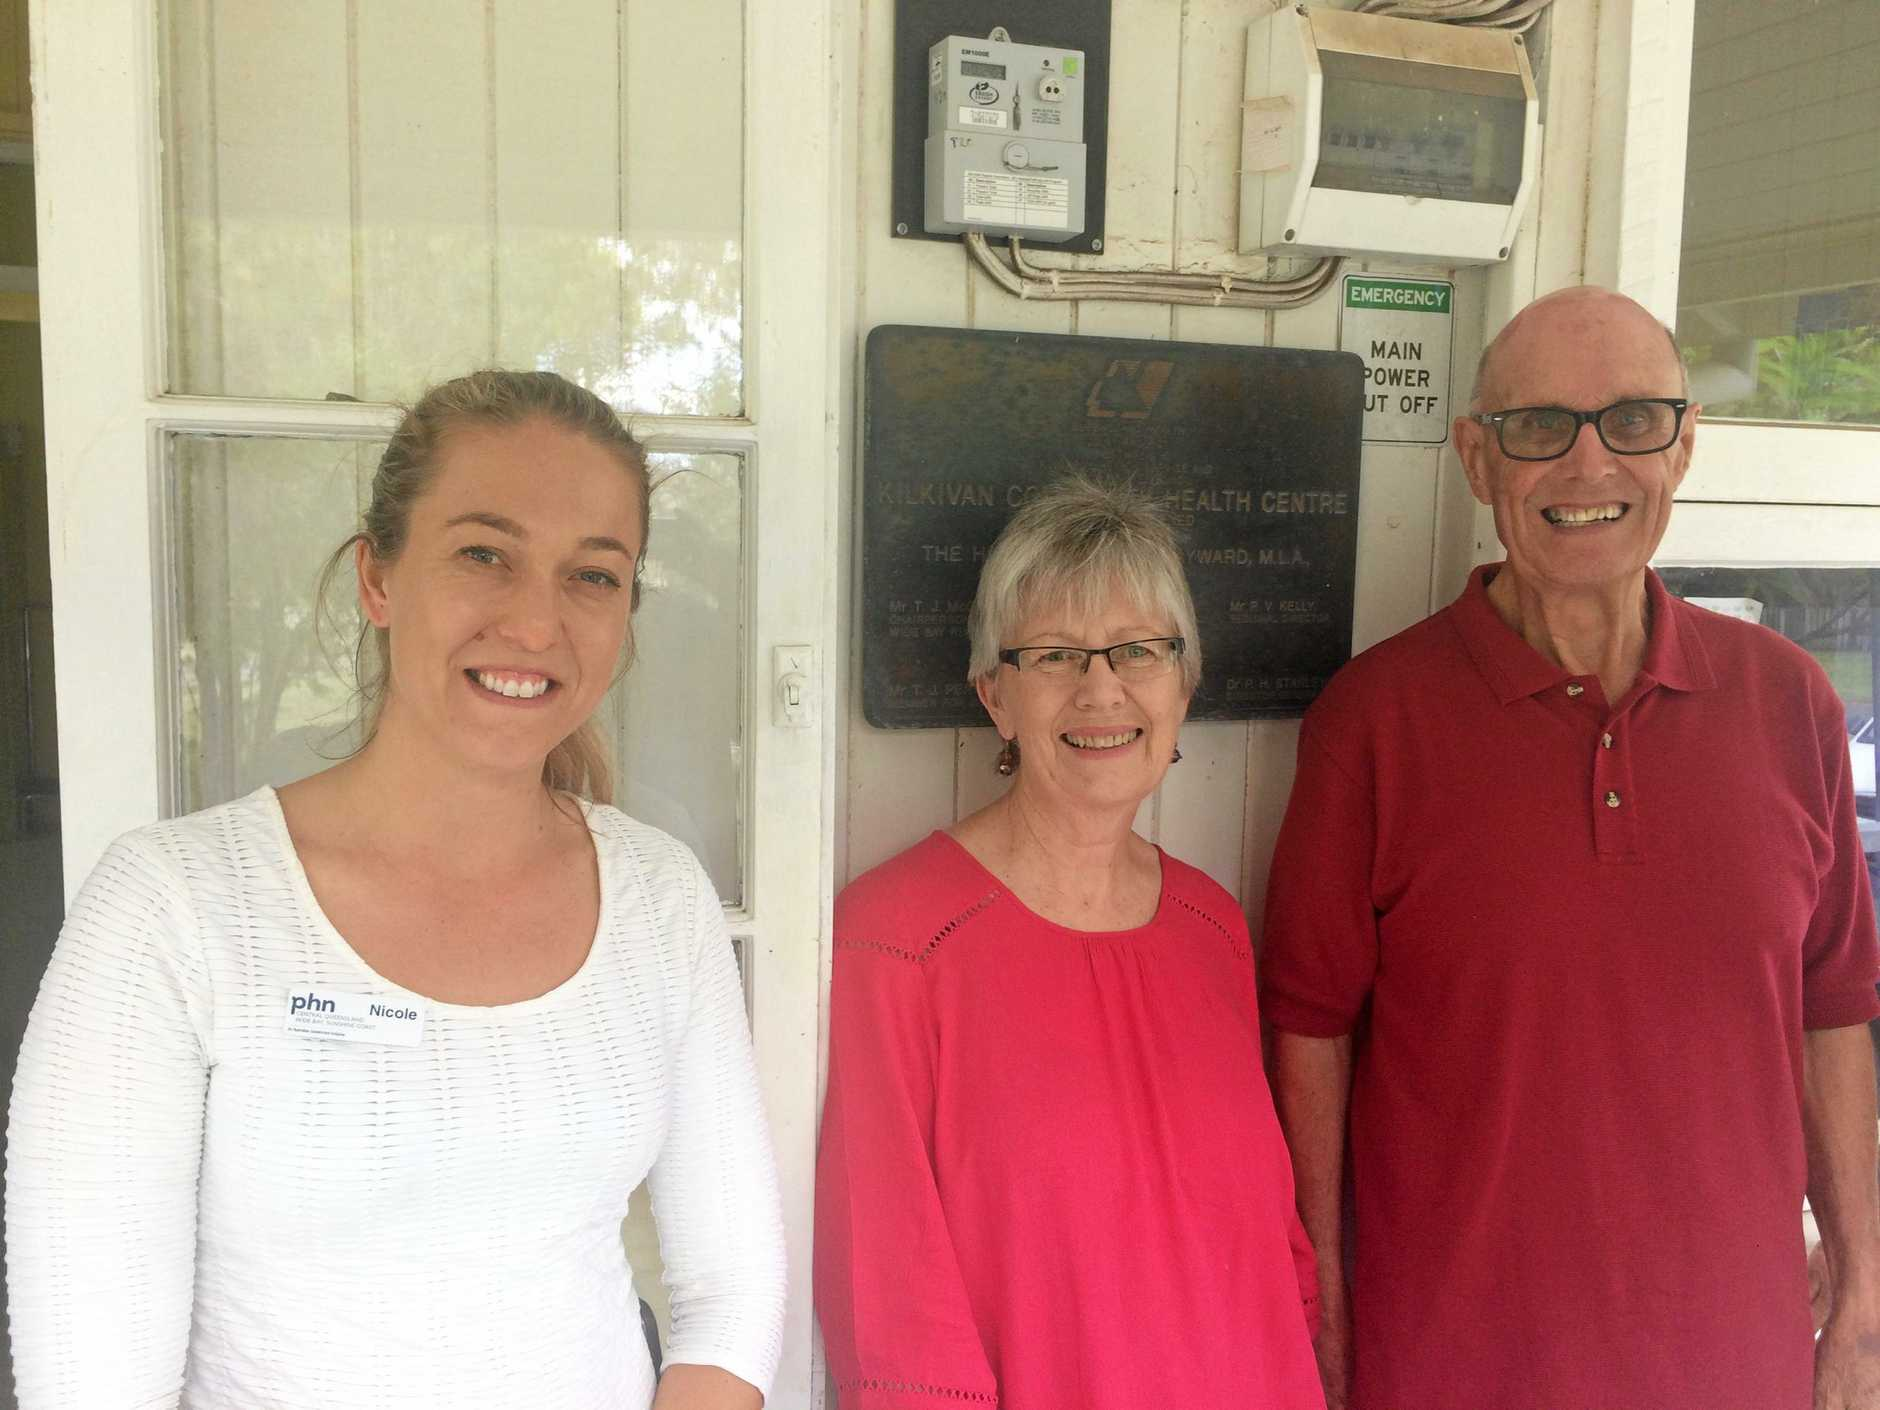 Nicole Cool with Lesley and Robert Thompson at the Kilkivan Community Health Centre, where the Gympie region's health services reach out to Kilkivan and Goomeri districts.